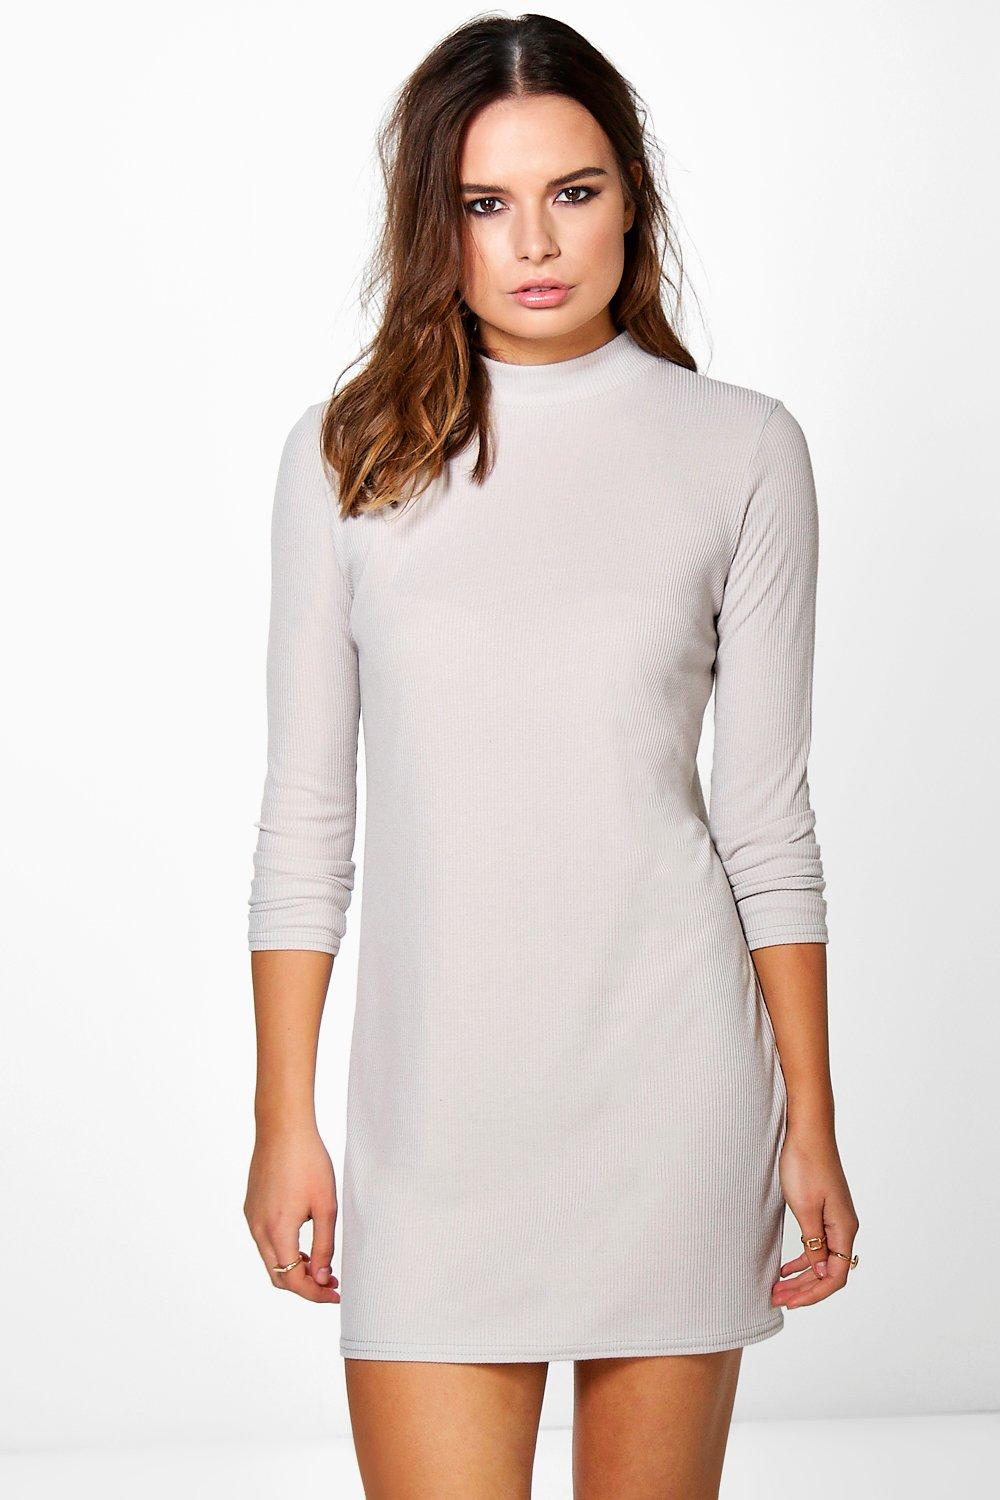 Scarlett High Neck Ribbed Shift Dress